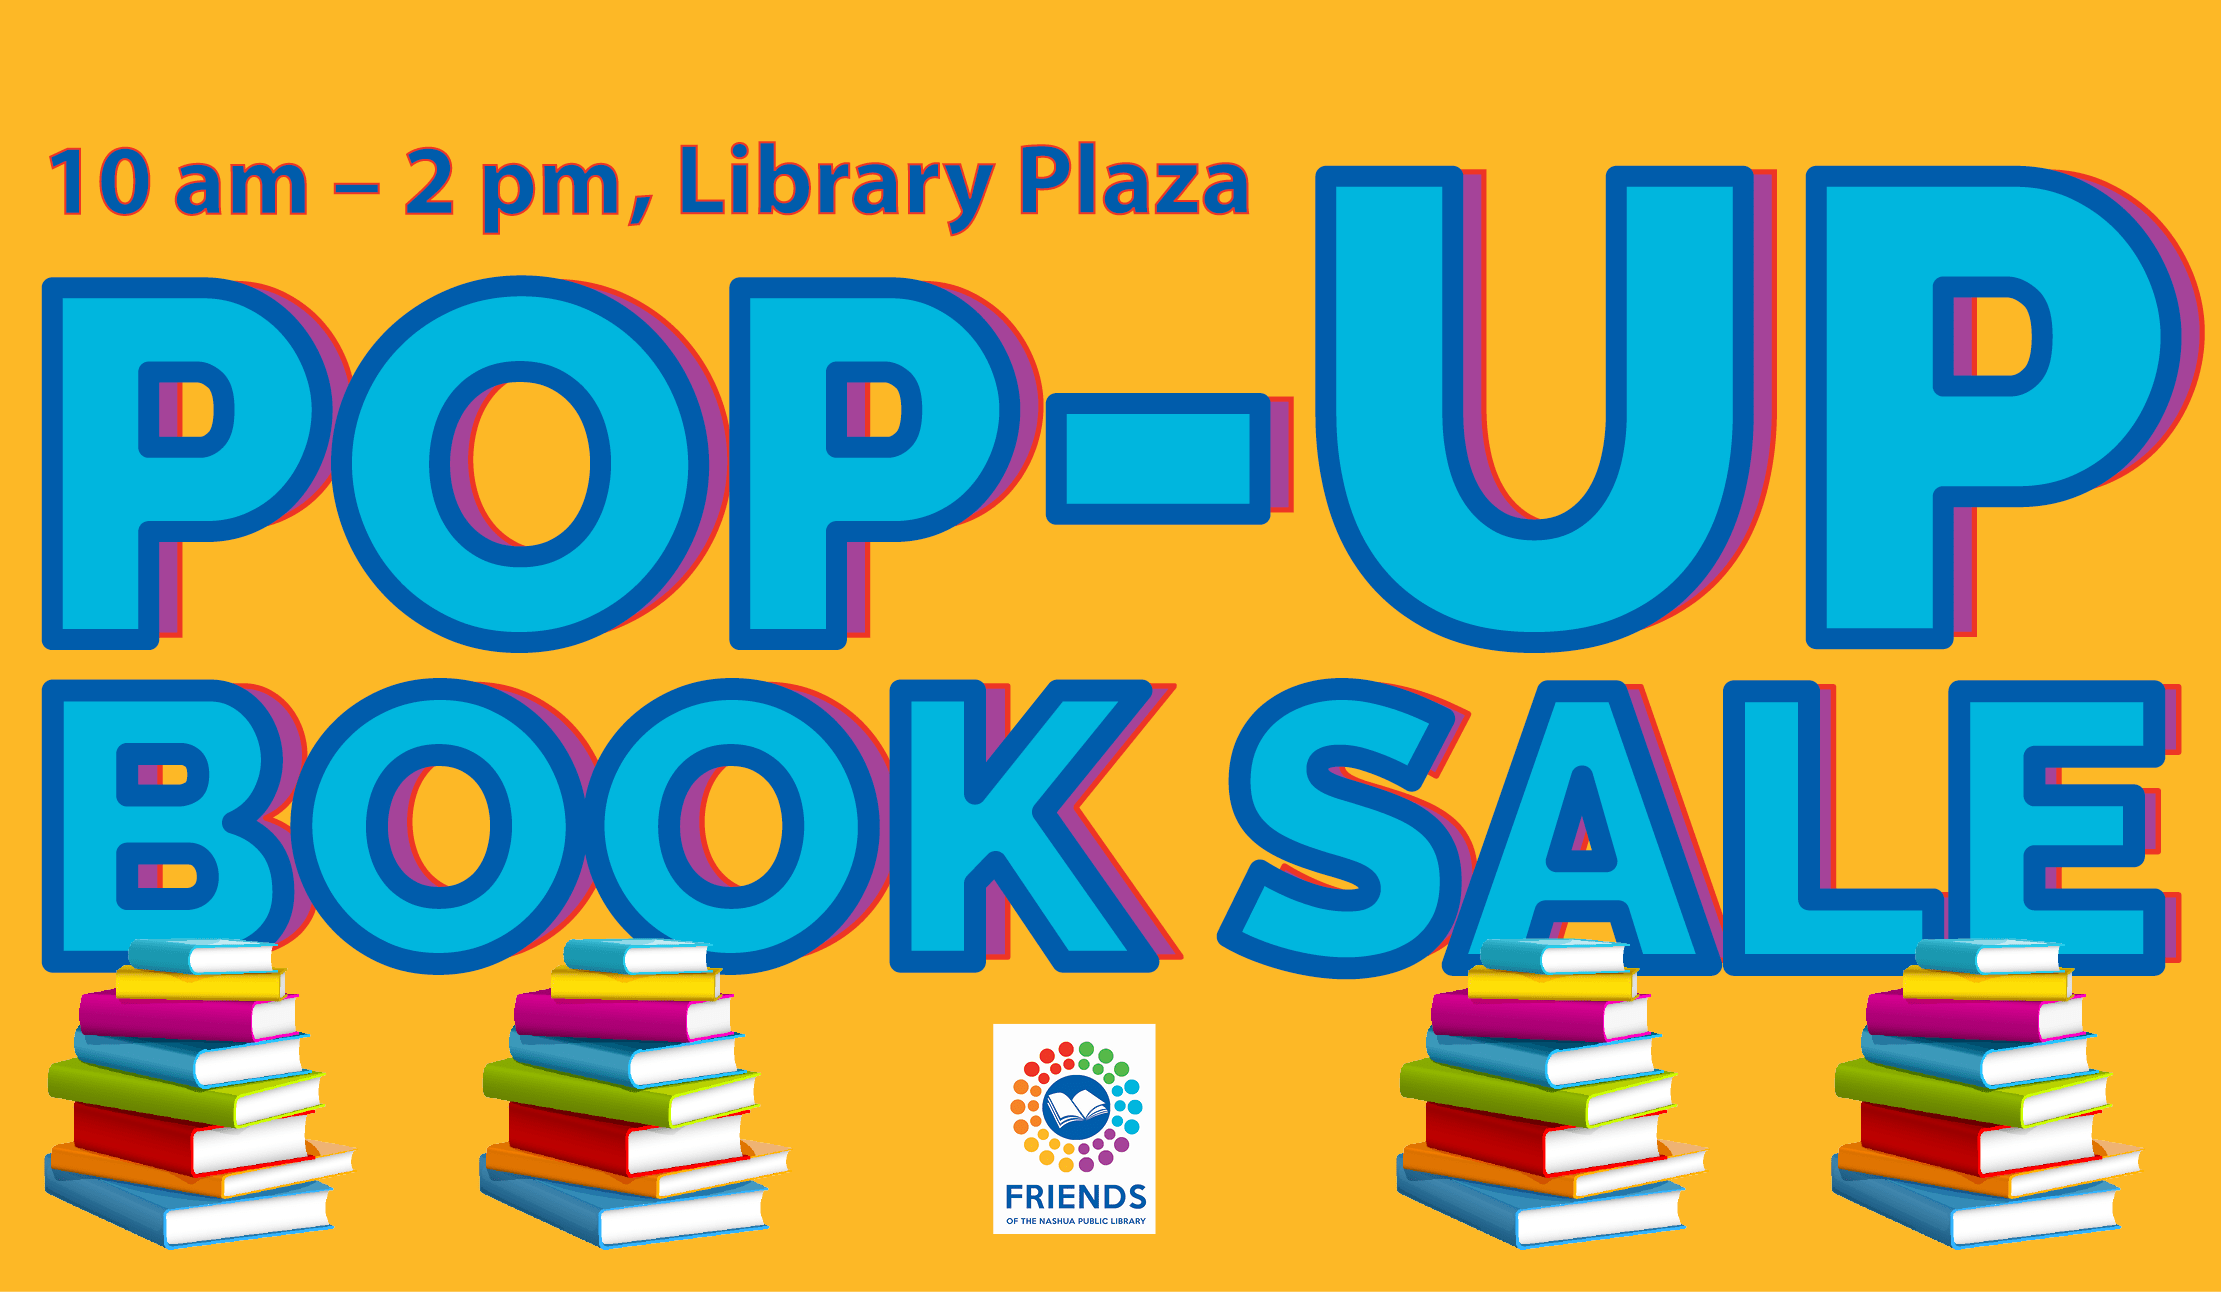 Pop-up book sale, 10 am to 2 pm, Library Plaza. Pictures of stacks of books, Friends of the Nashua Public Library logo.